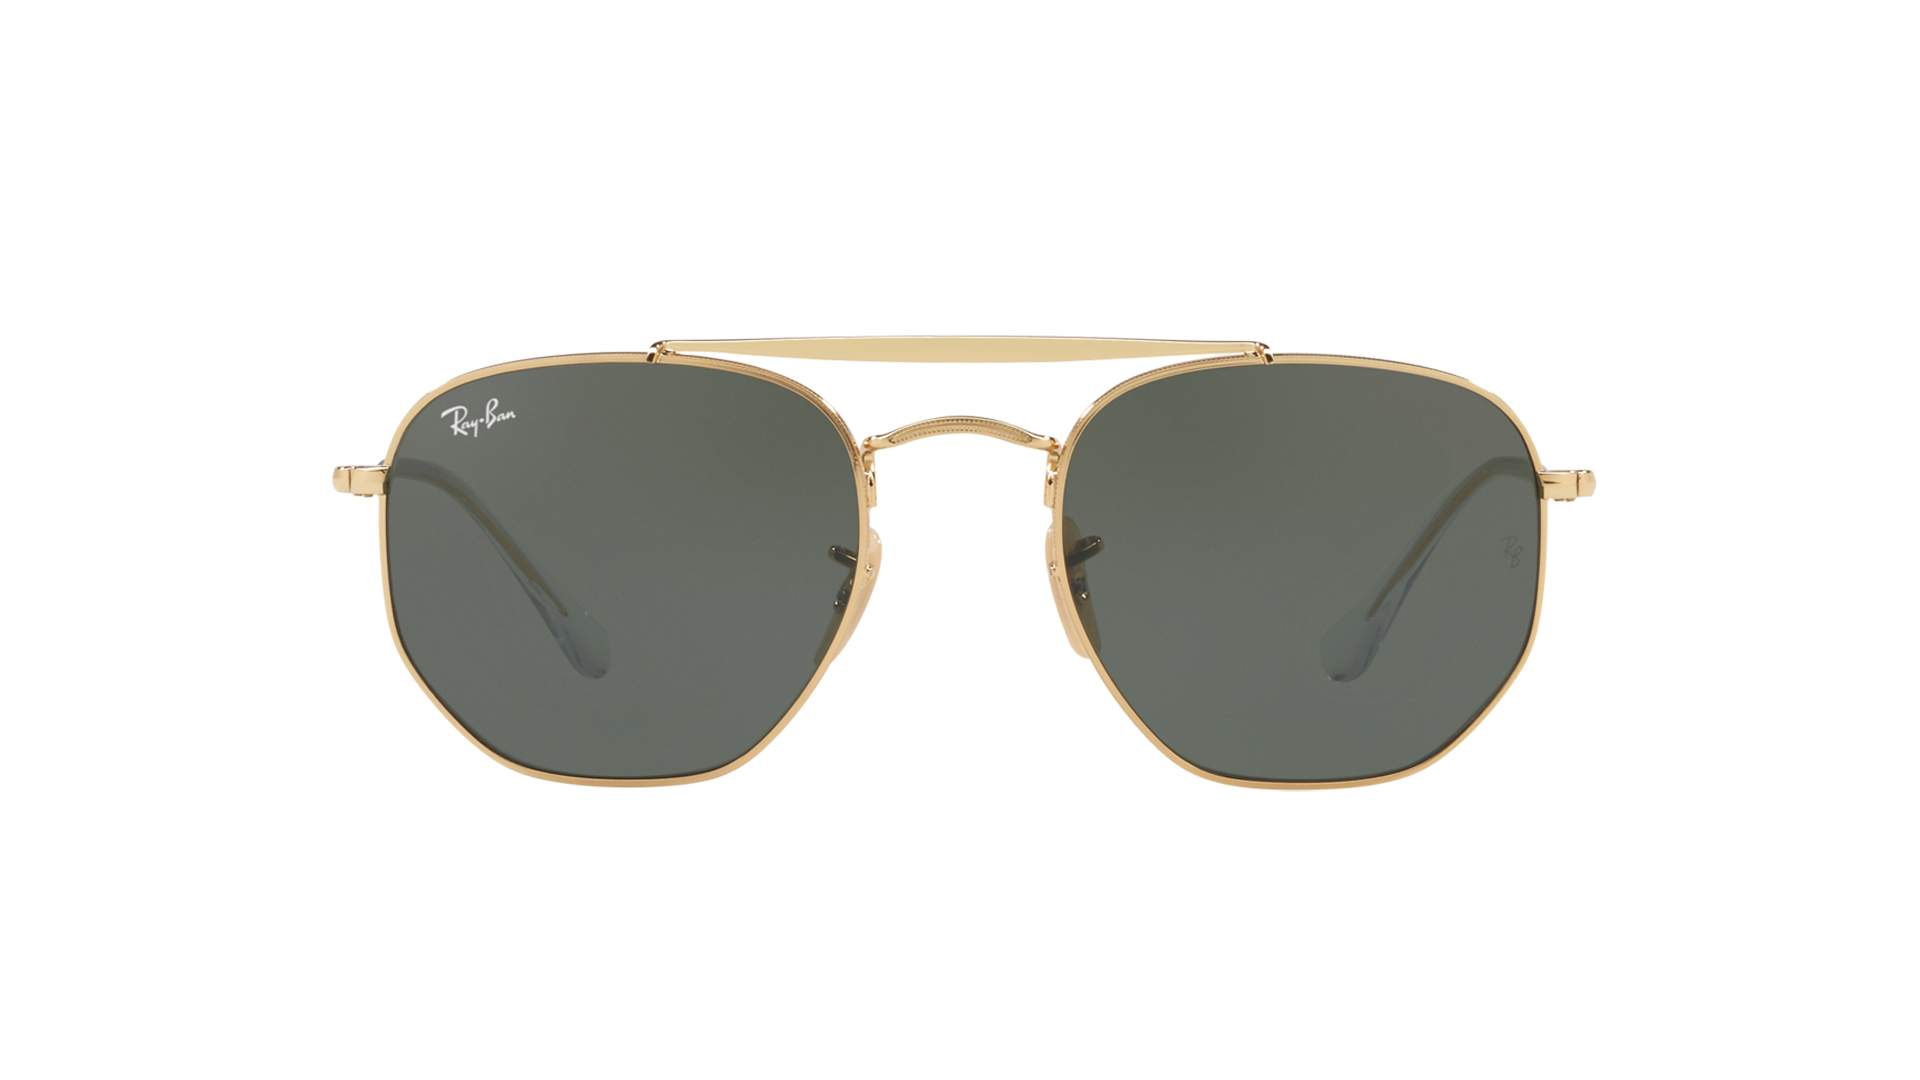 54656eb0f41 Sunglasses Ray-Ban Marshal Gold G-15 RB3648 001 54-21 Large